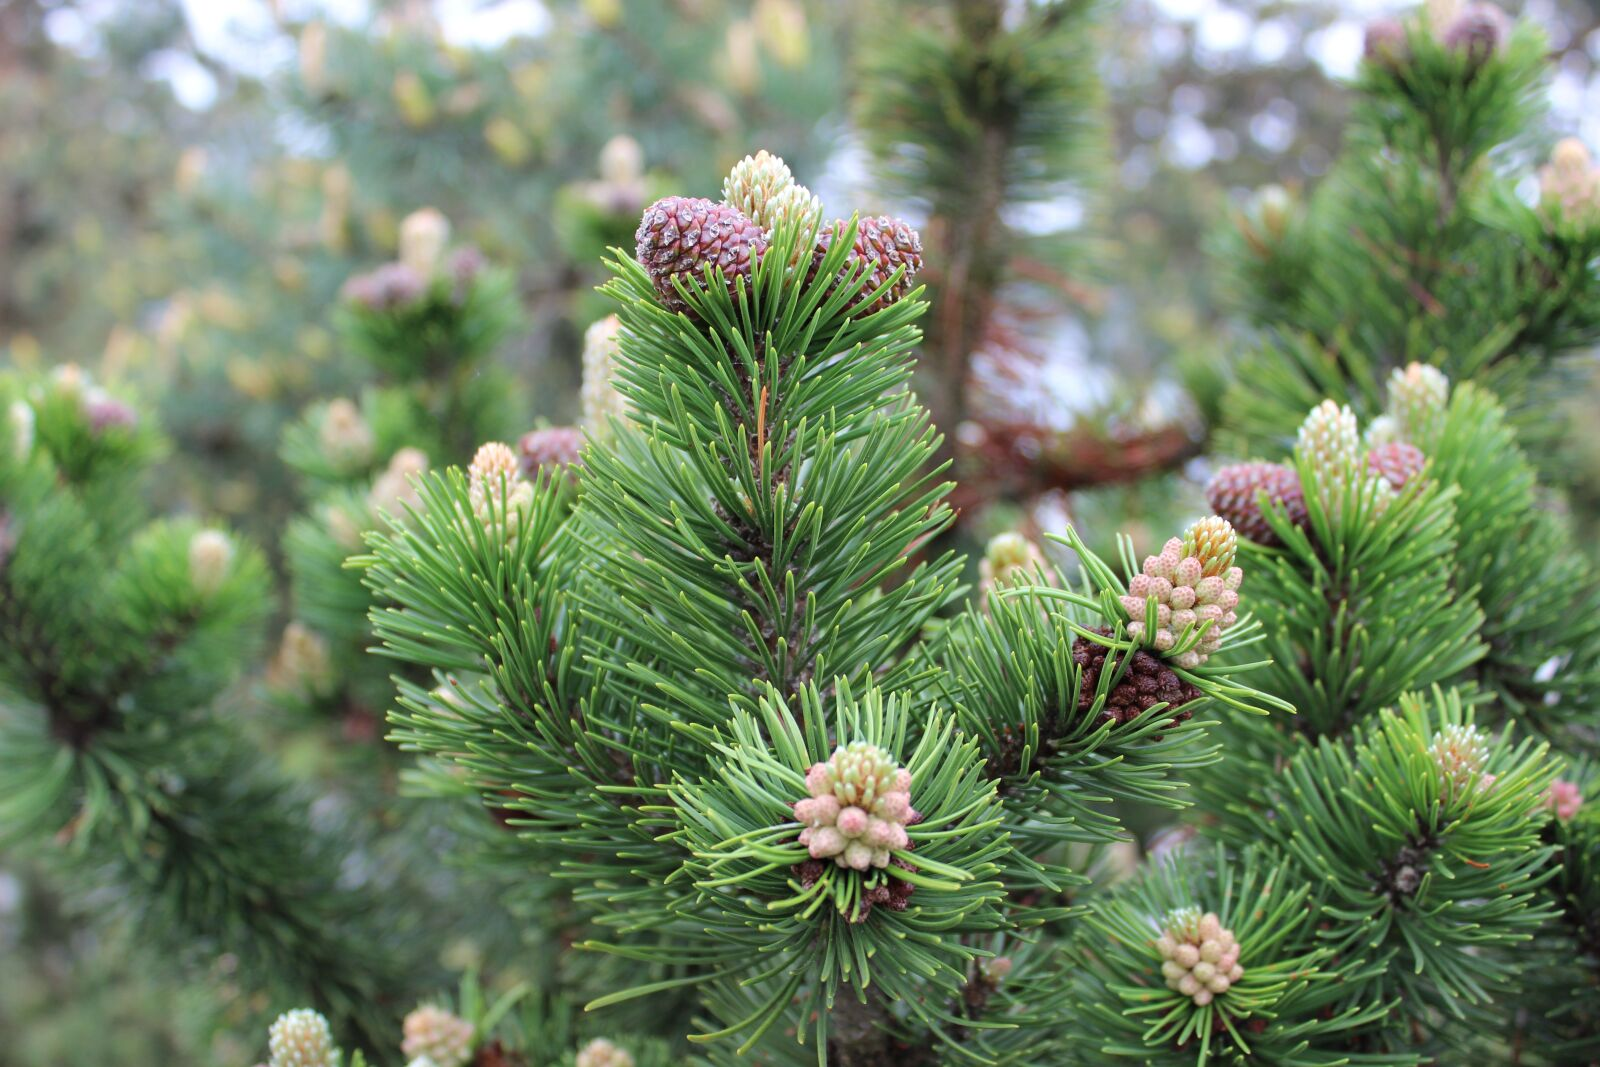 """Canon EOS 600D (Rebel EOS T3i / EOS Kiss X5) sample photo. """"Larch, conifer, tree"""" photography"""